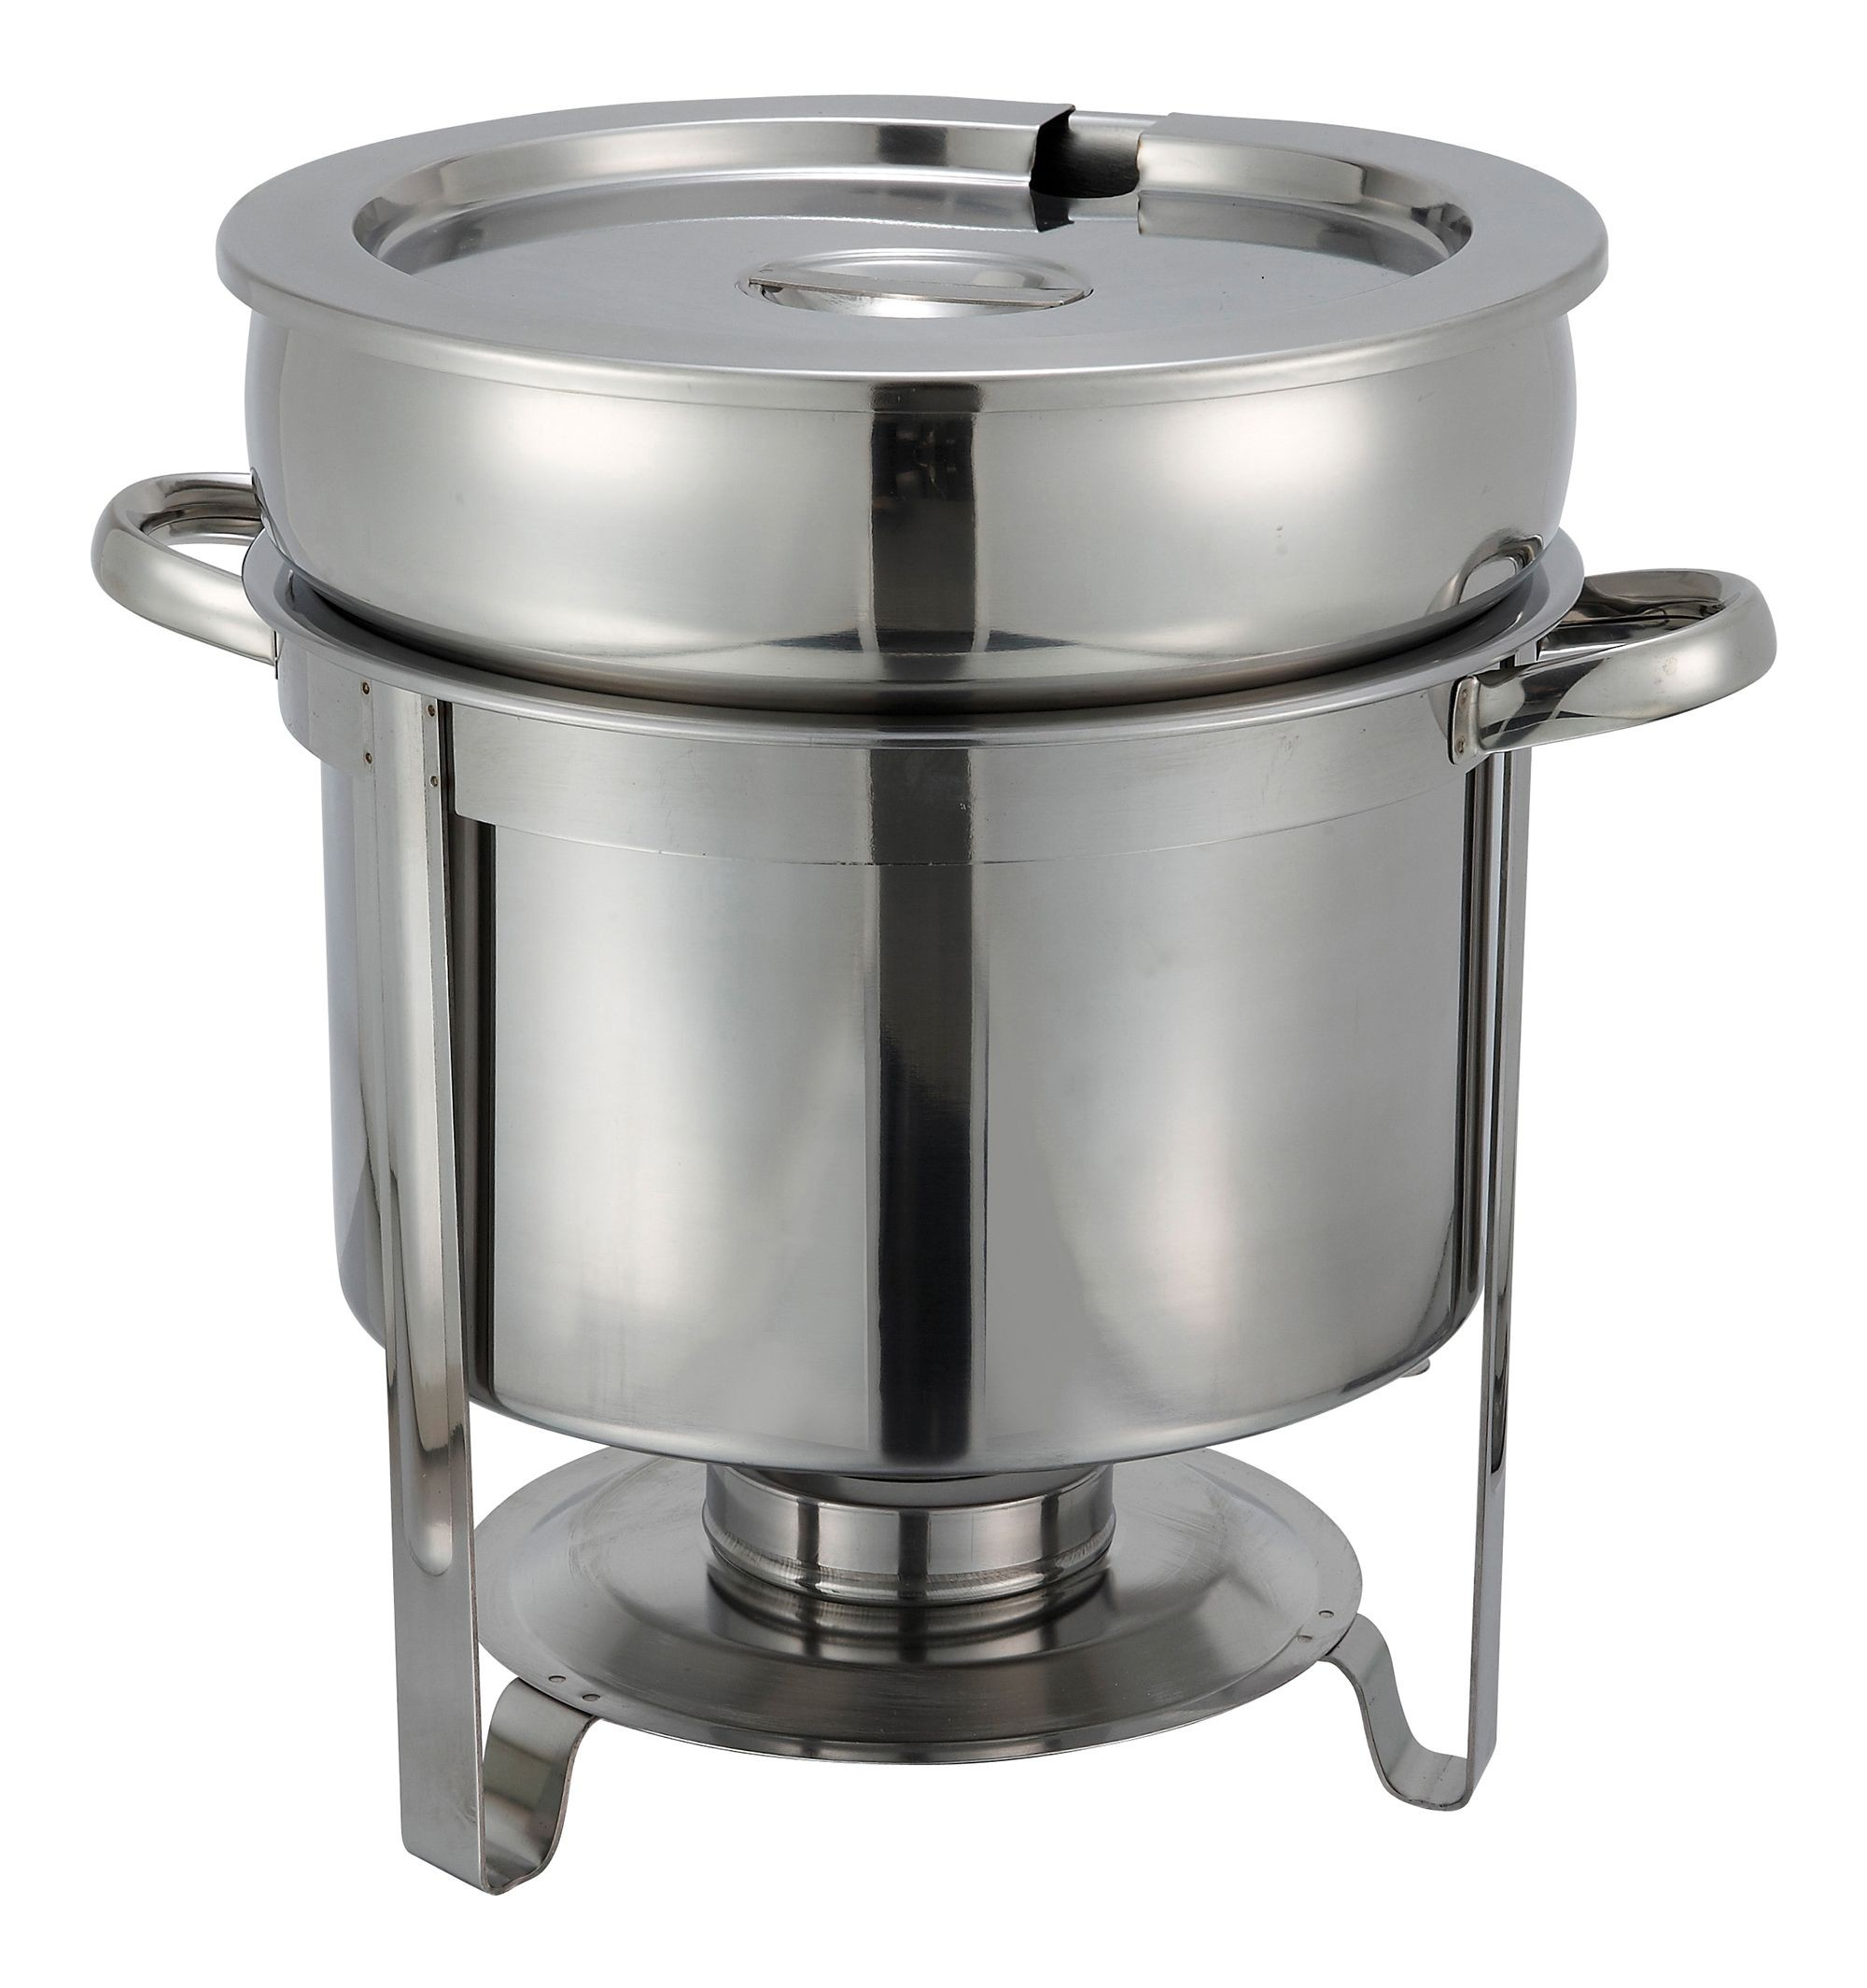 Stainless Steel Soup Chafer 11 Qt